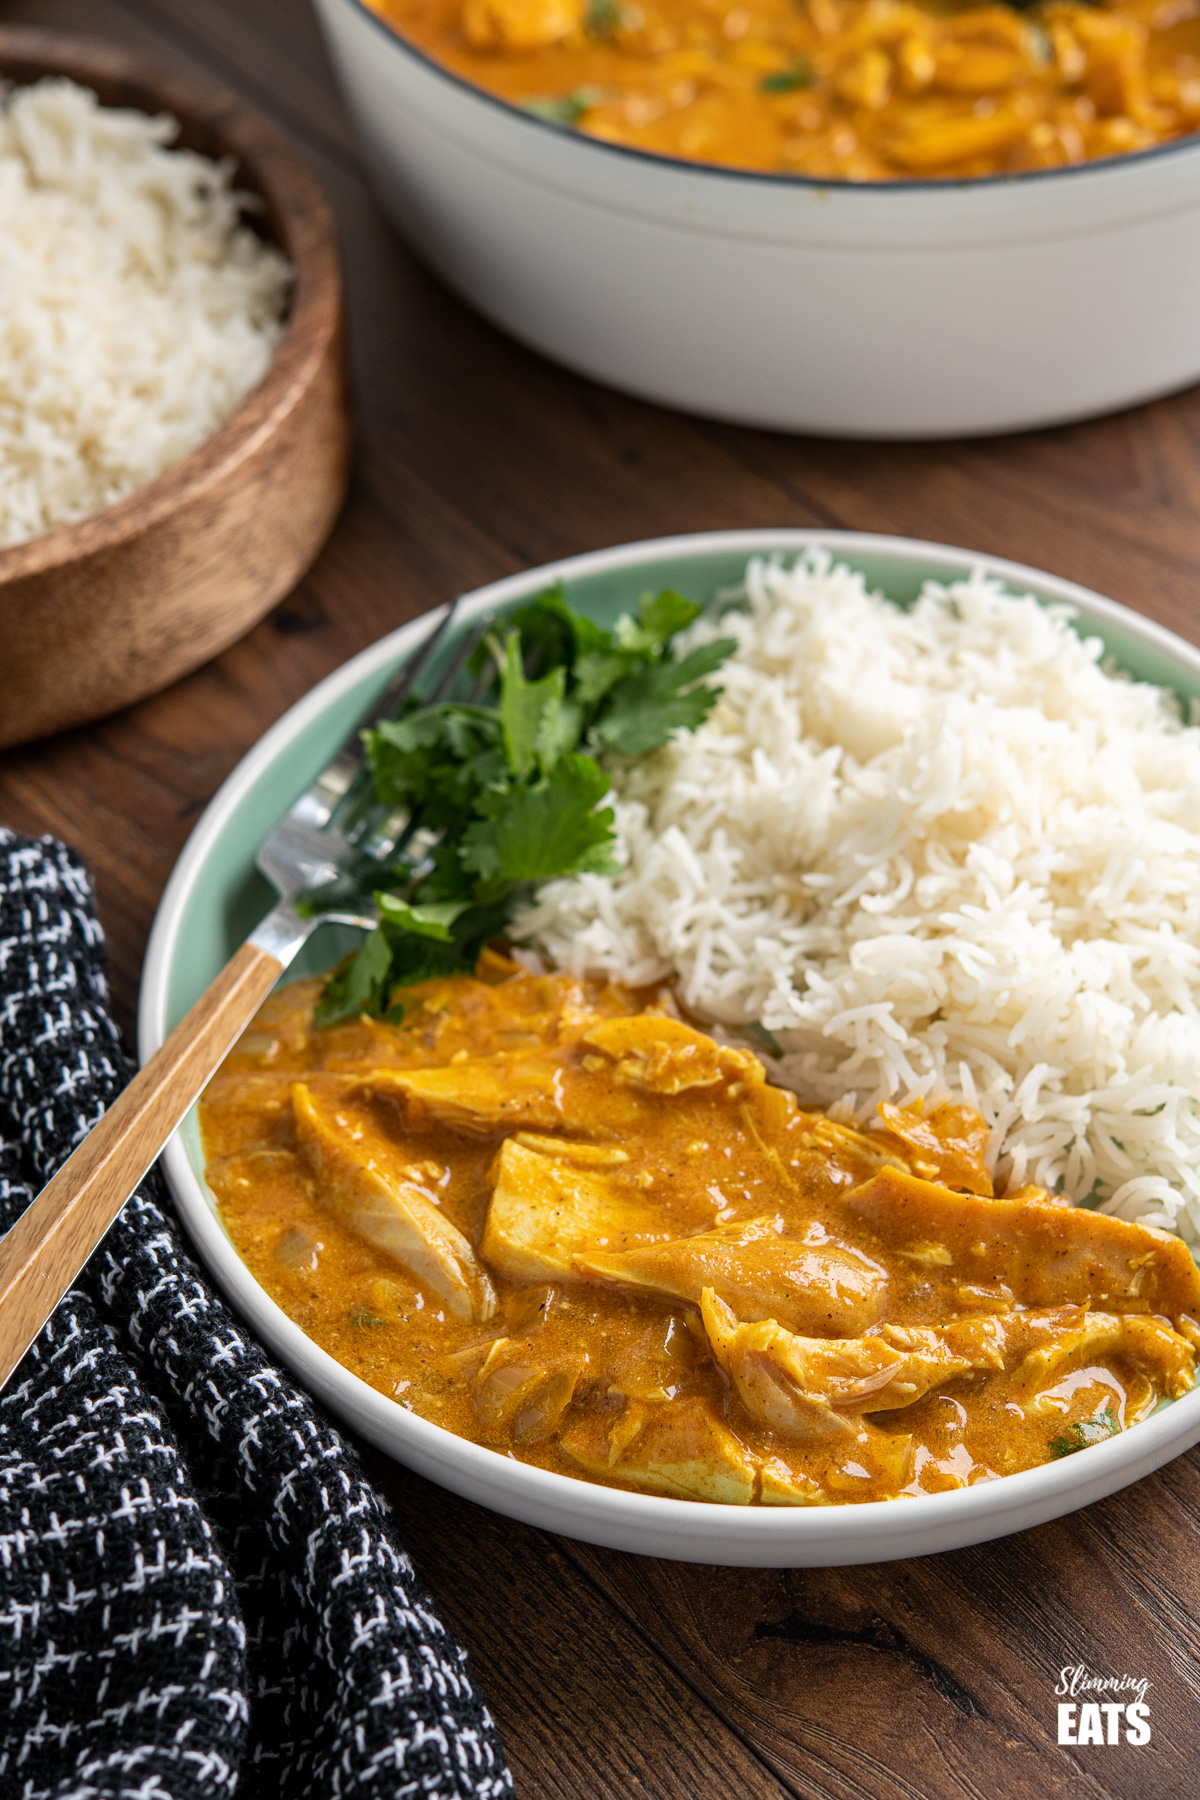 Mild chicken curry on teal plate with rice and coriander